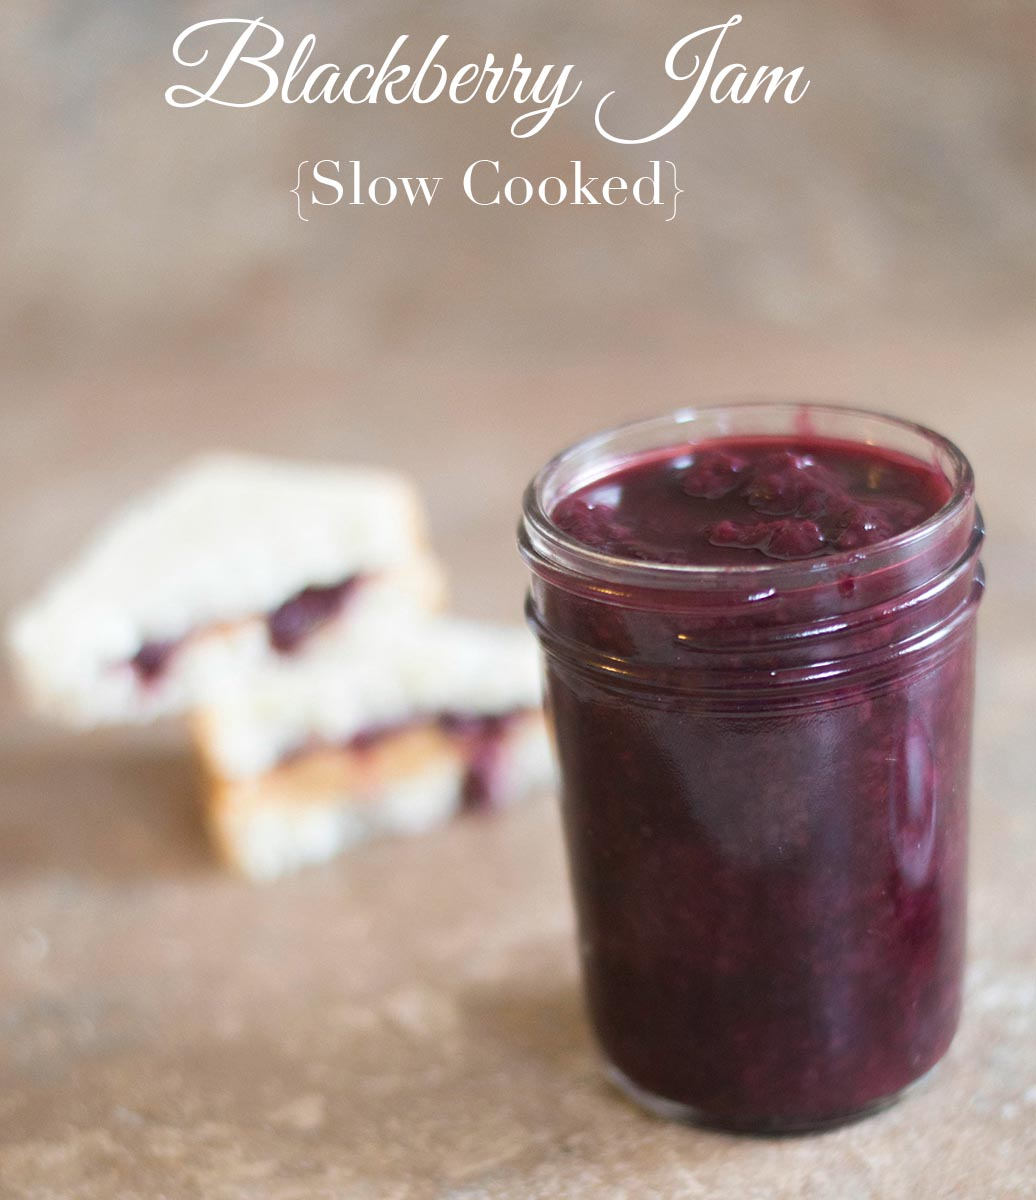 Slow cooker blackberry jam is an easy crock pot recipe to make. Just add the ingredients and it will cook itself. Add nutmeg & your PB&J will be delicious!